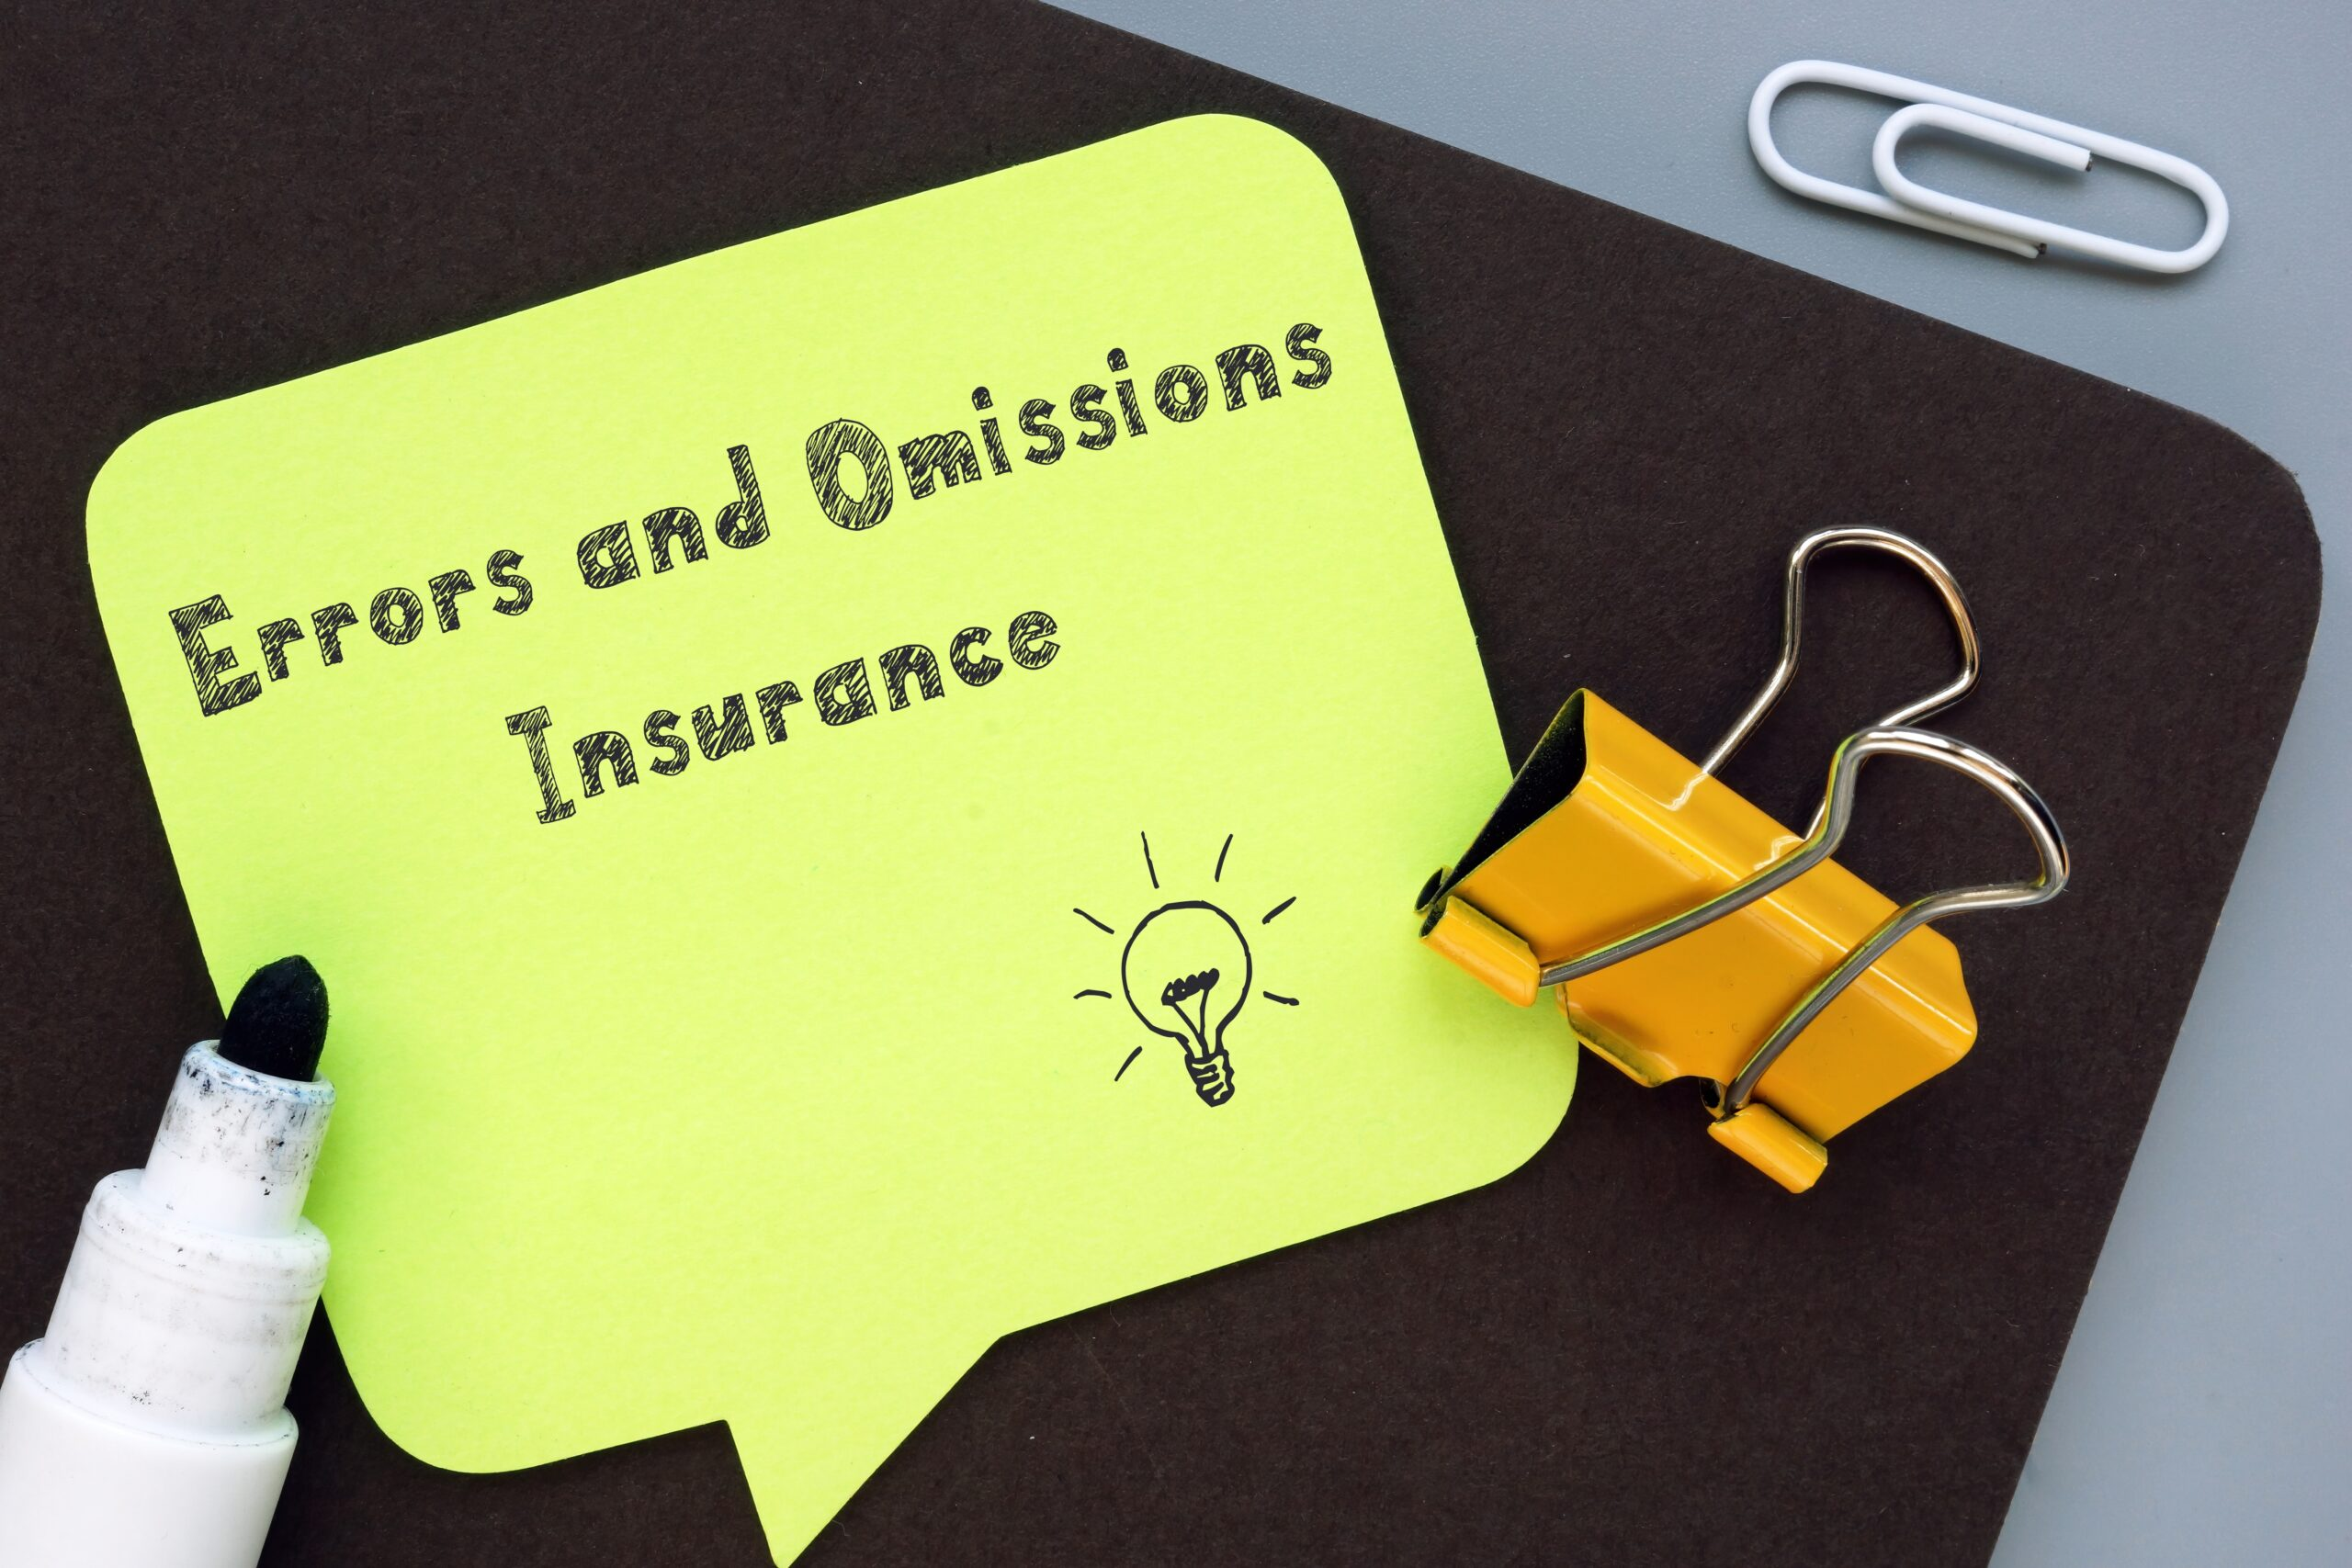 Errors and Omissions Insurance Reminder bubble